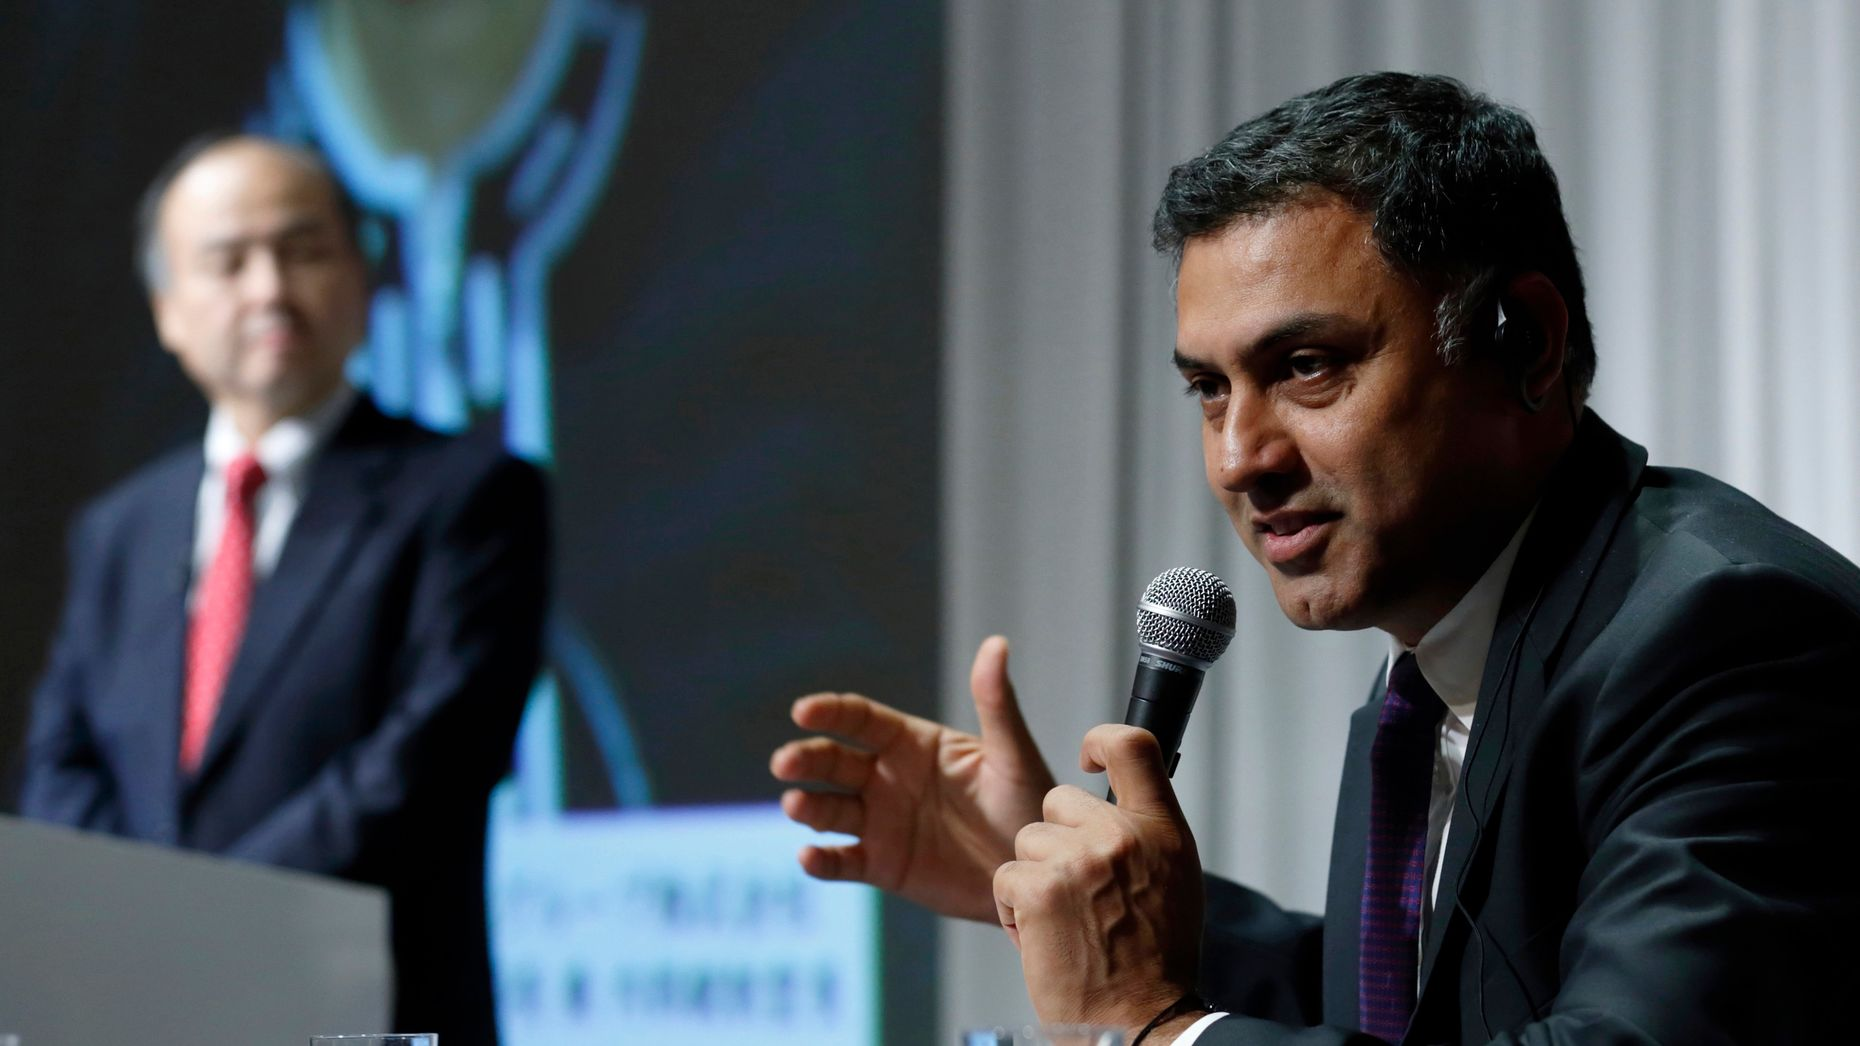 SoftBank's investment chief, Nikesh Arora, right. Photo by Bloomberg.